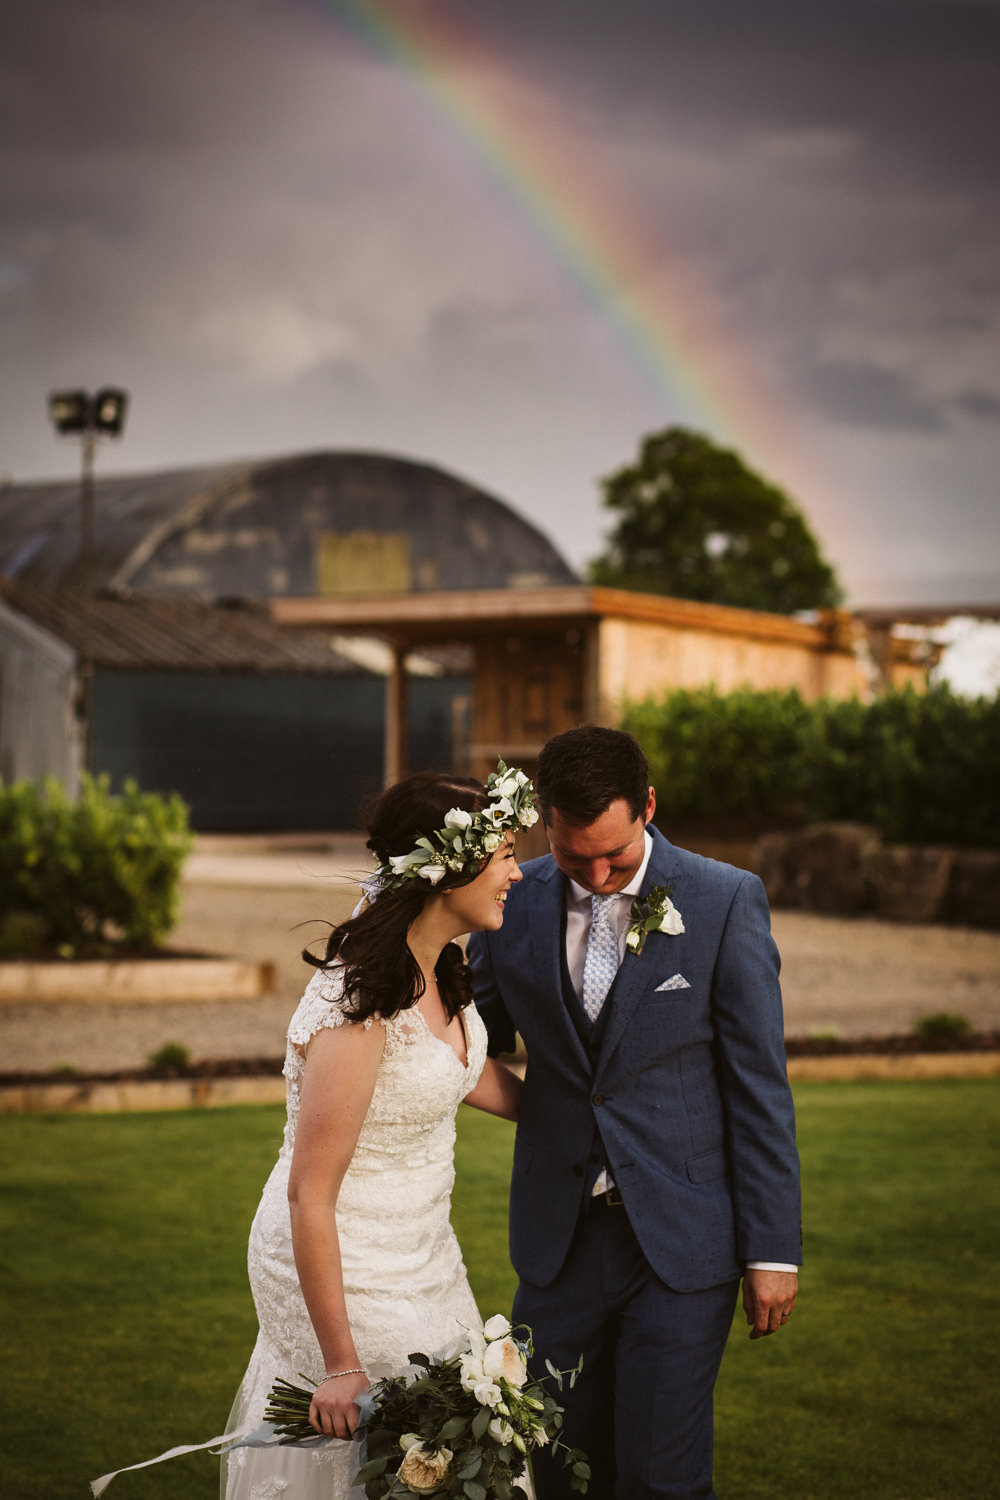 Botanical & Rustic Barn Wedding with a Rainbow